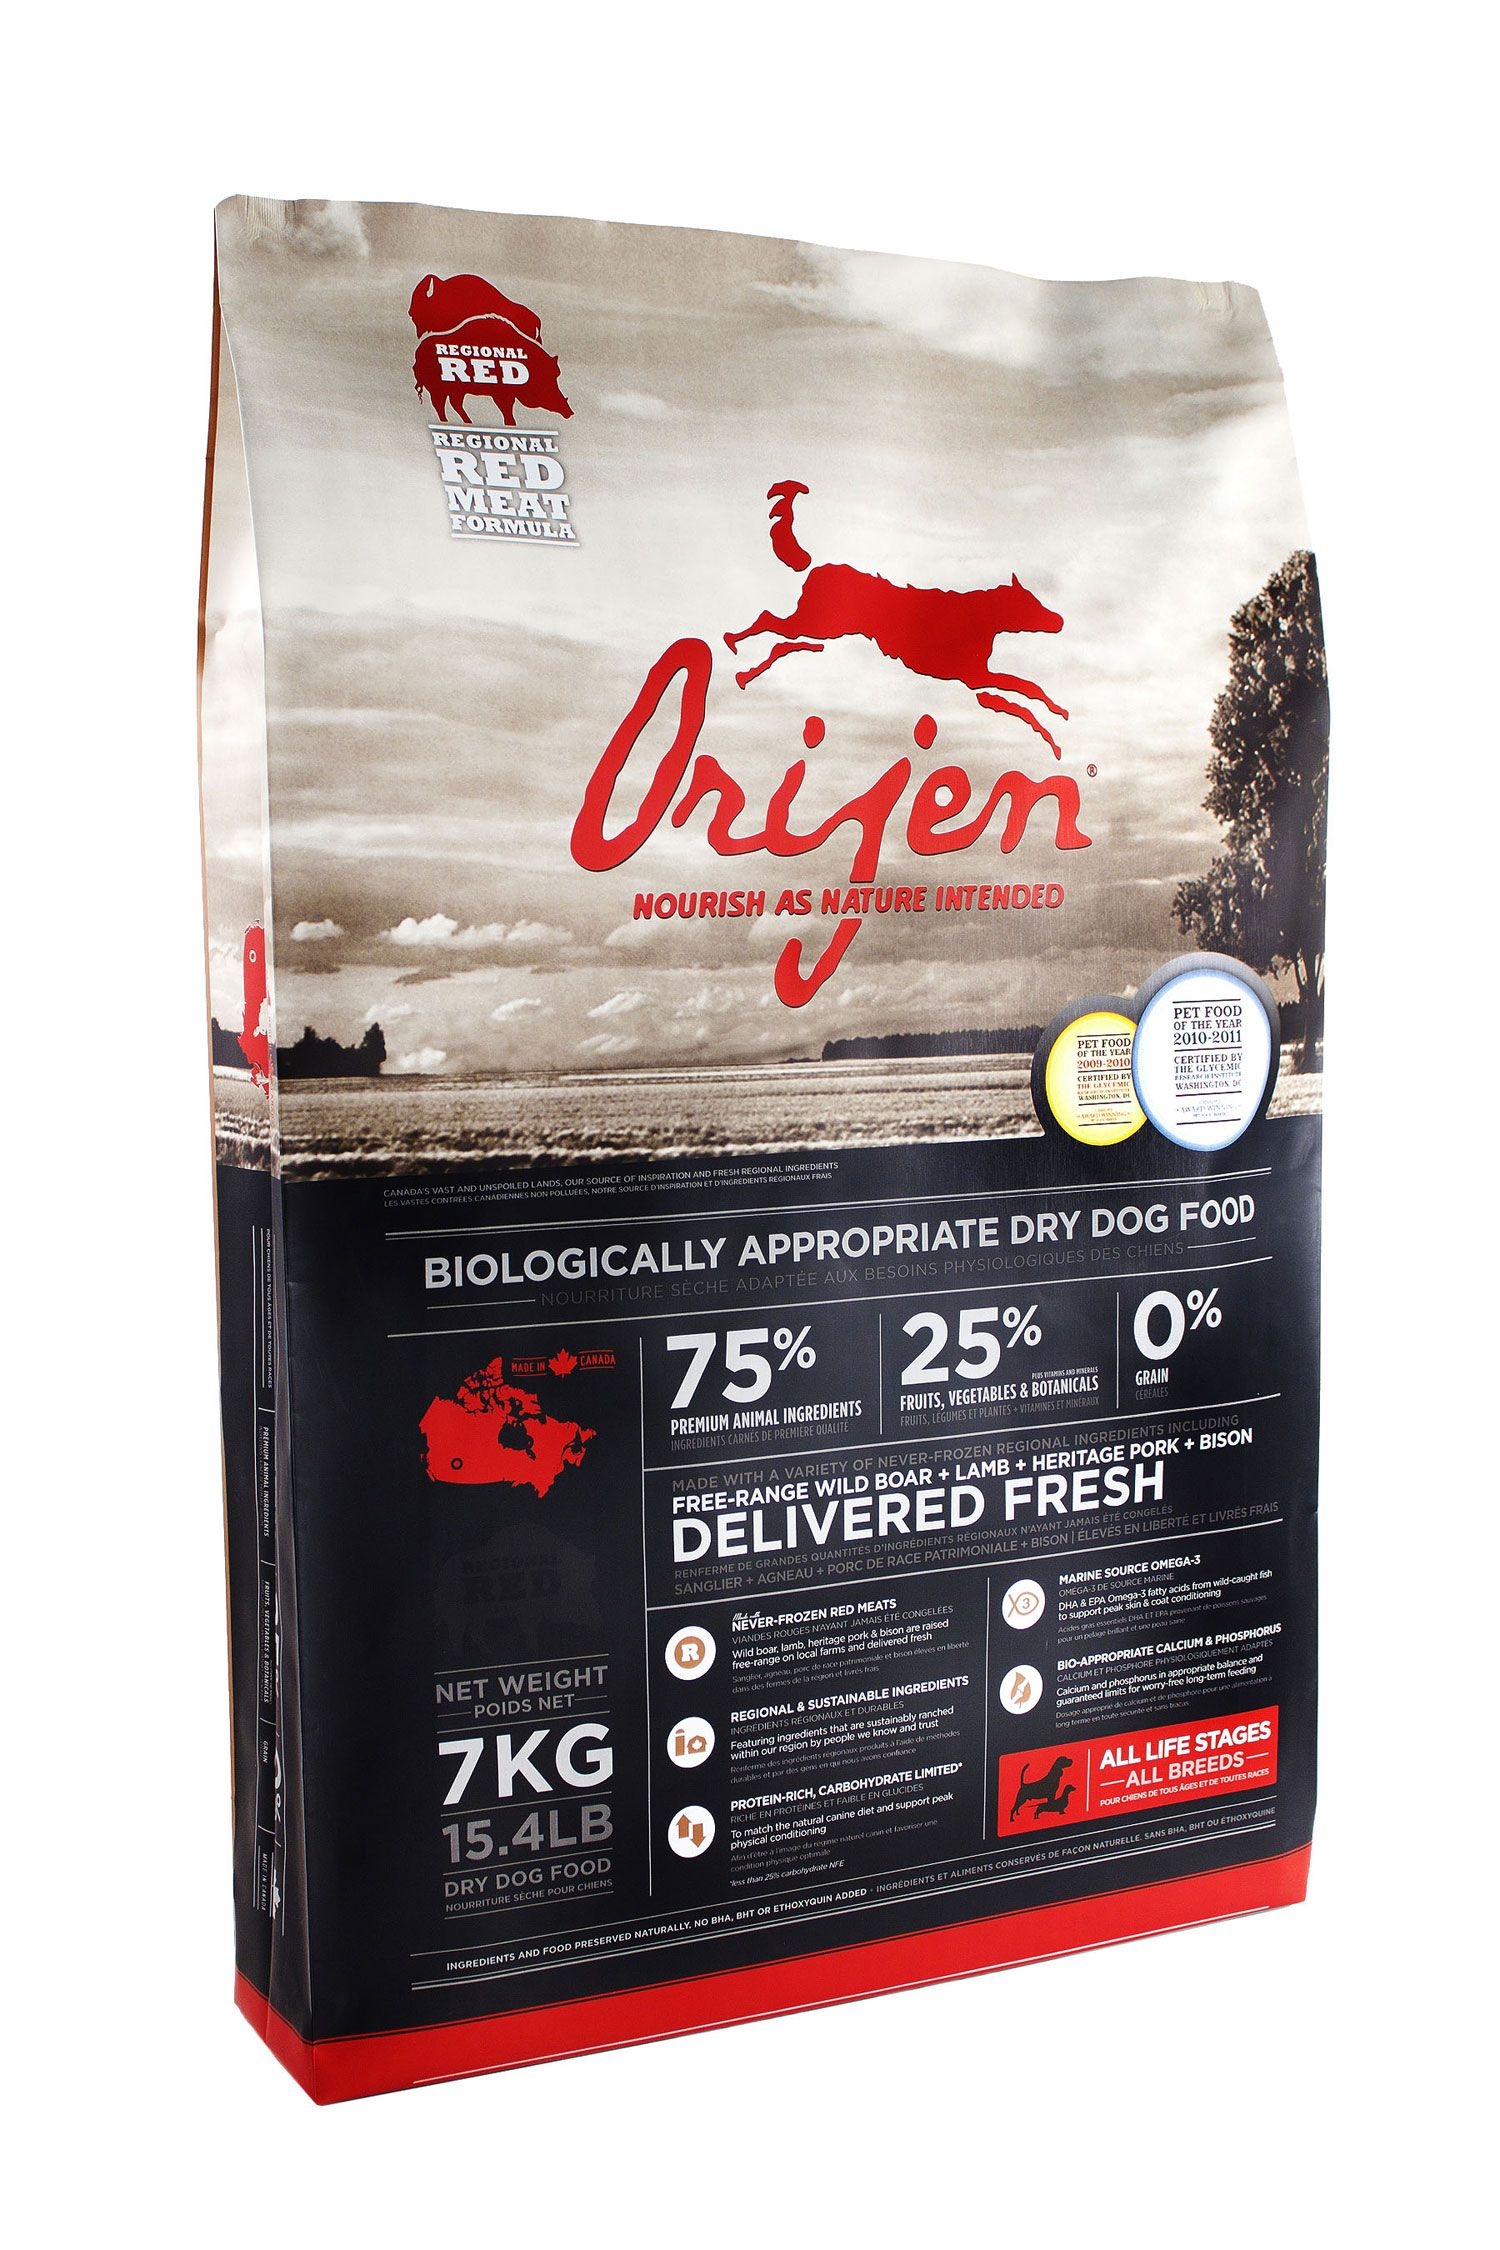 Orijen Food For Cats And Dogs Made In Canada Has Gotten The Best